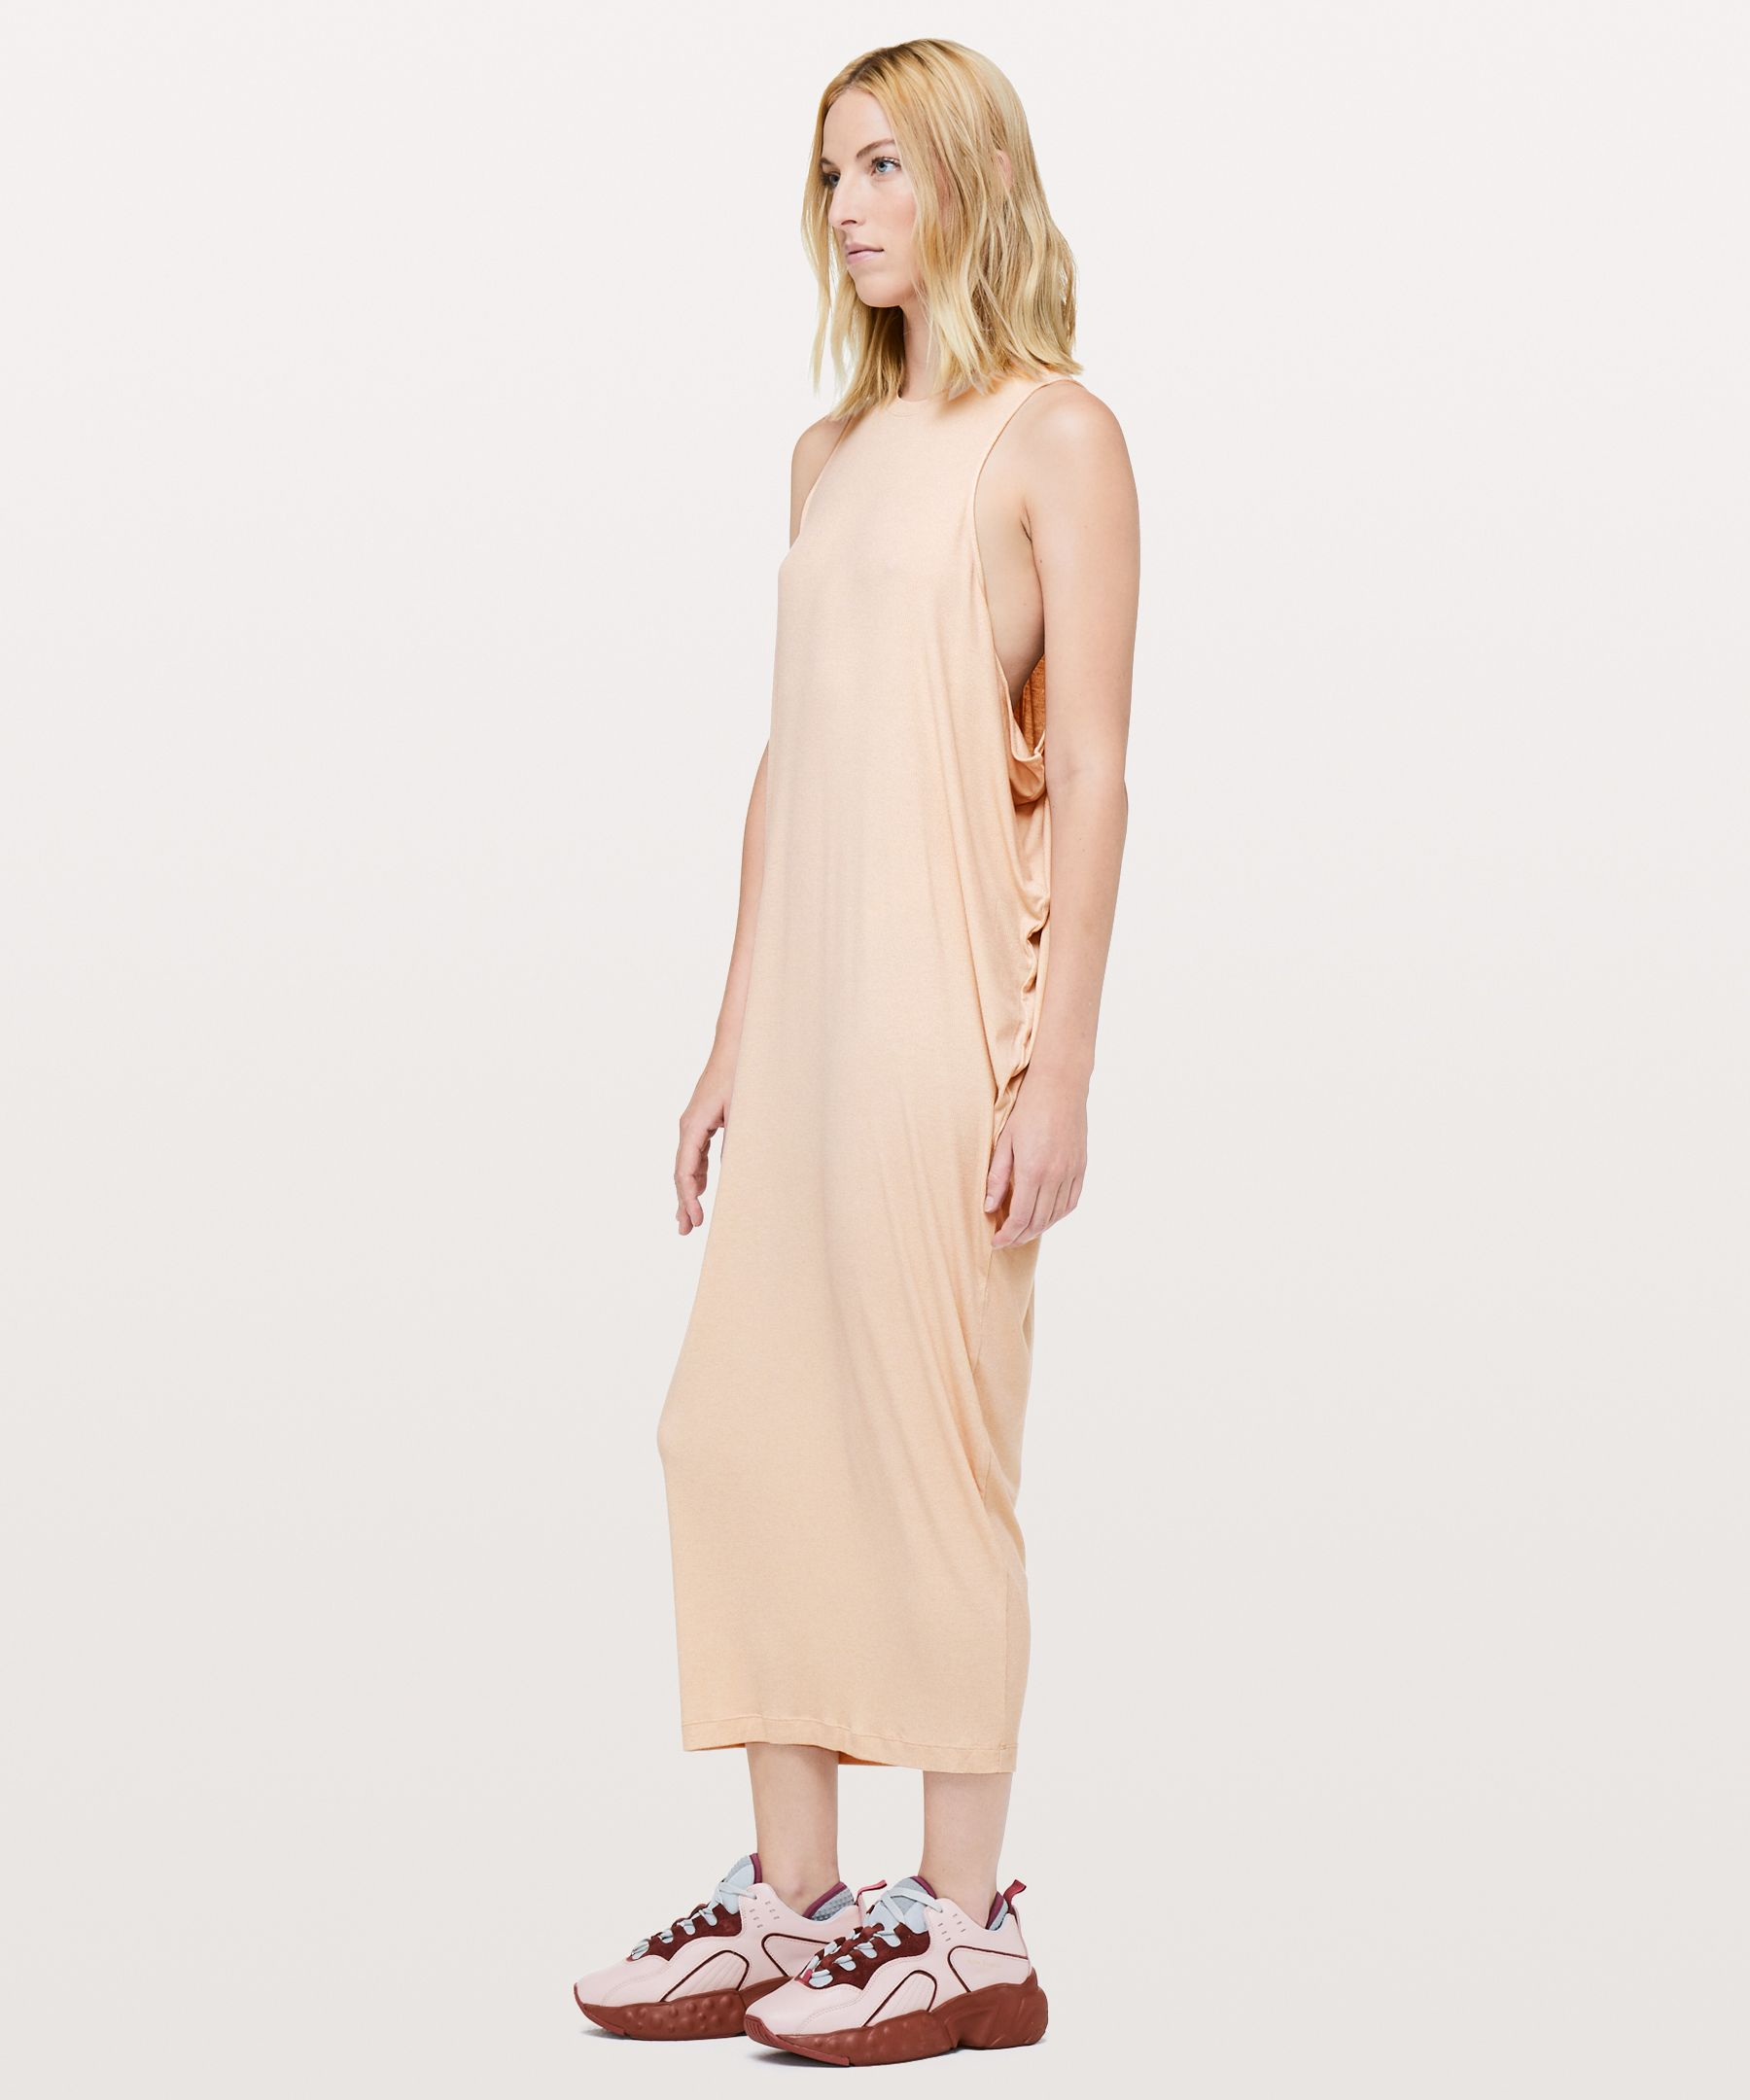 Nan Dress Lululemon Lab New by Lululemon